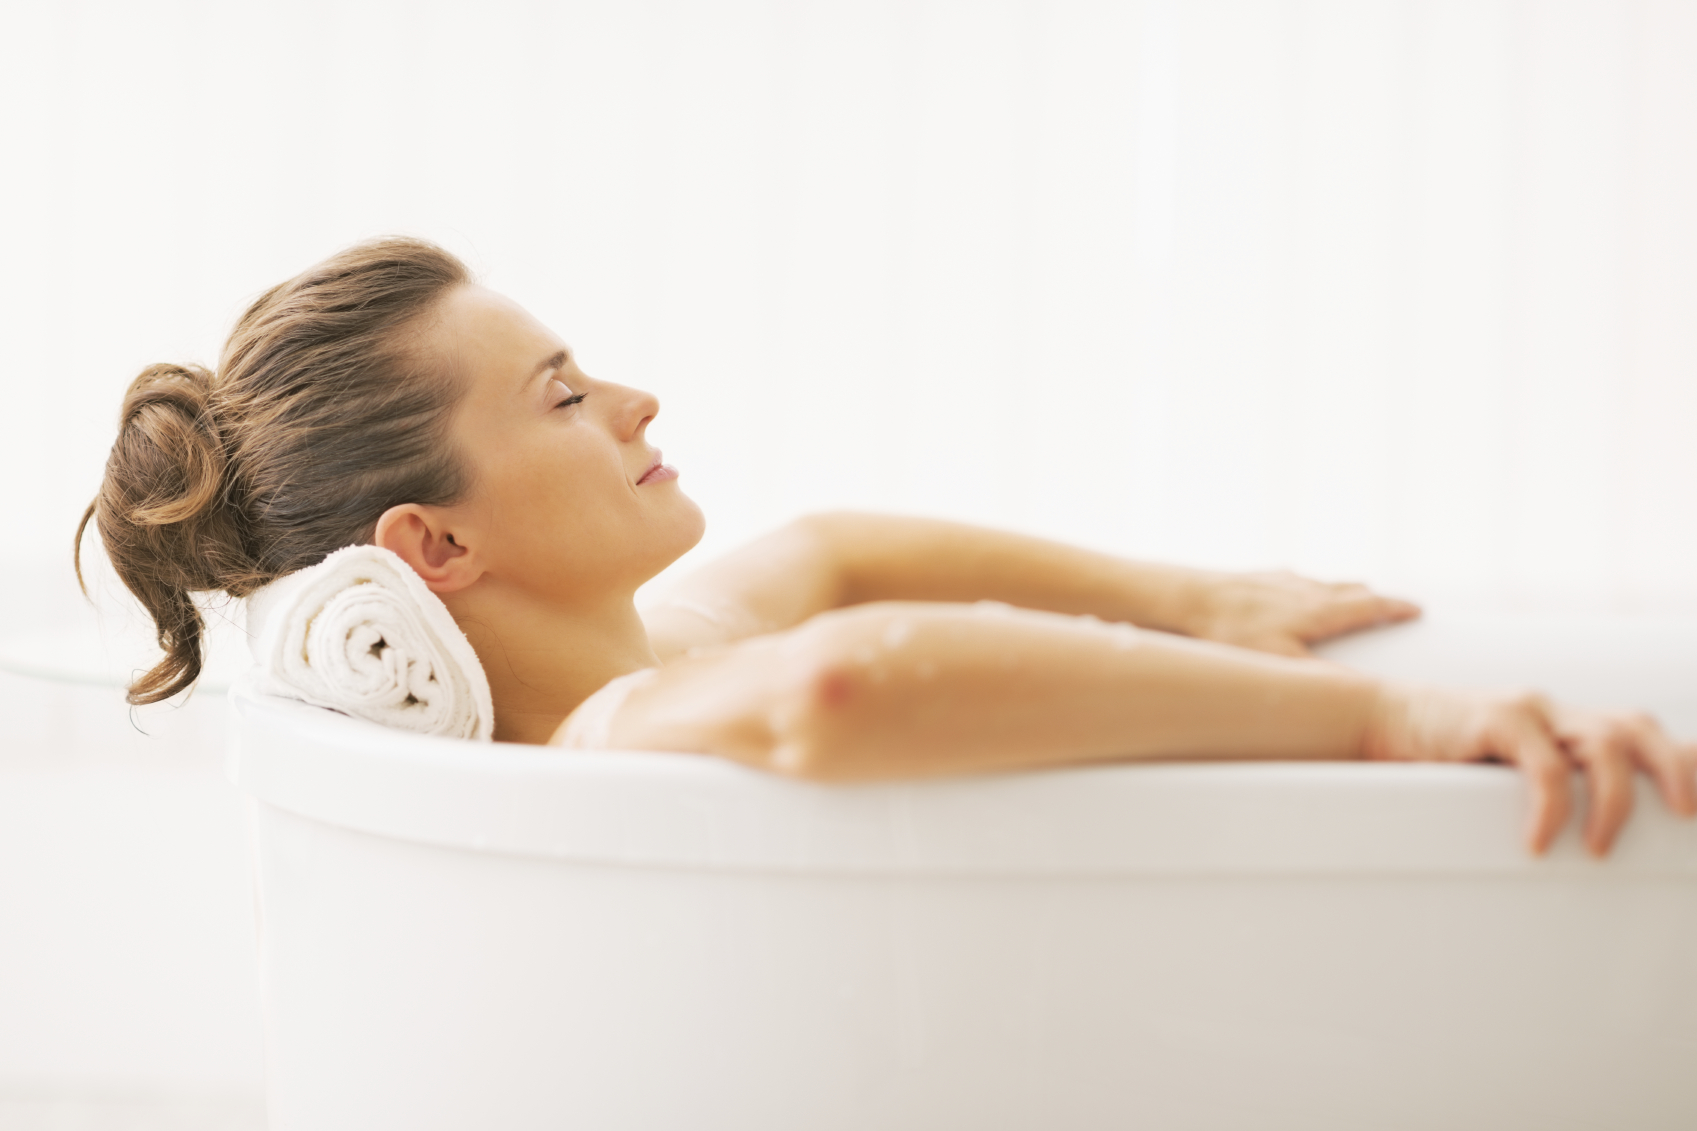 Portrait of young woman relaxing in bathtub